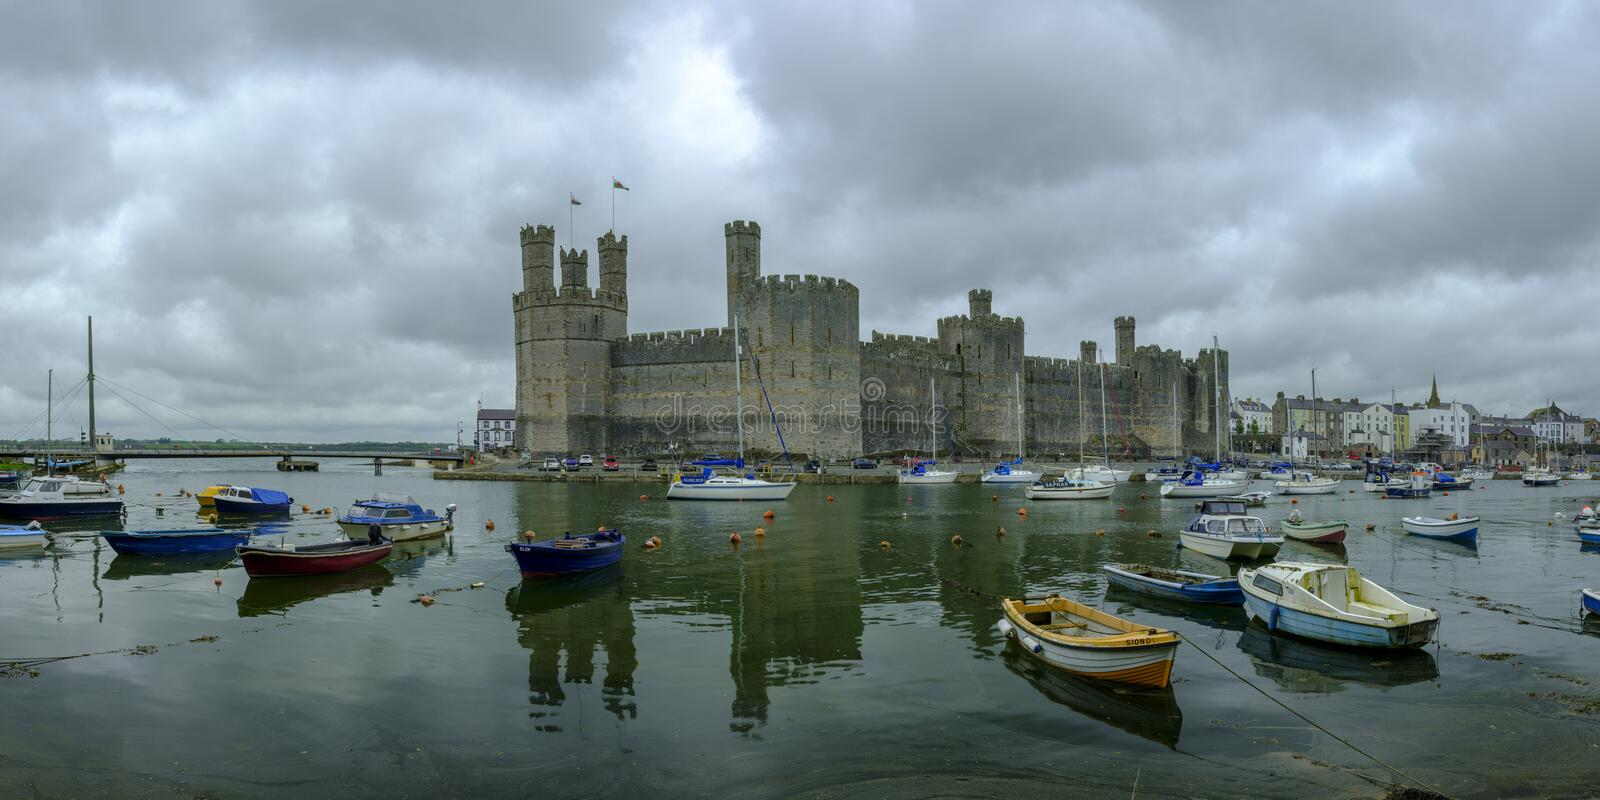 Caernarfonkasteel over de haven, Wales, het UK royalty-vrije stock foto's